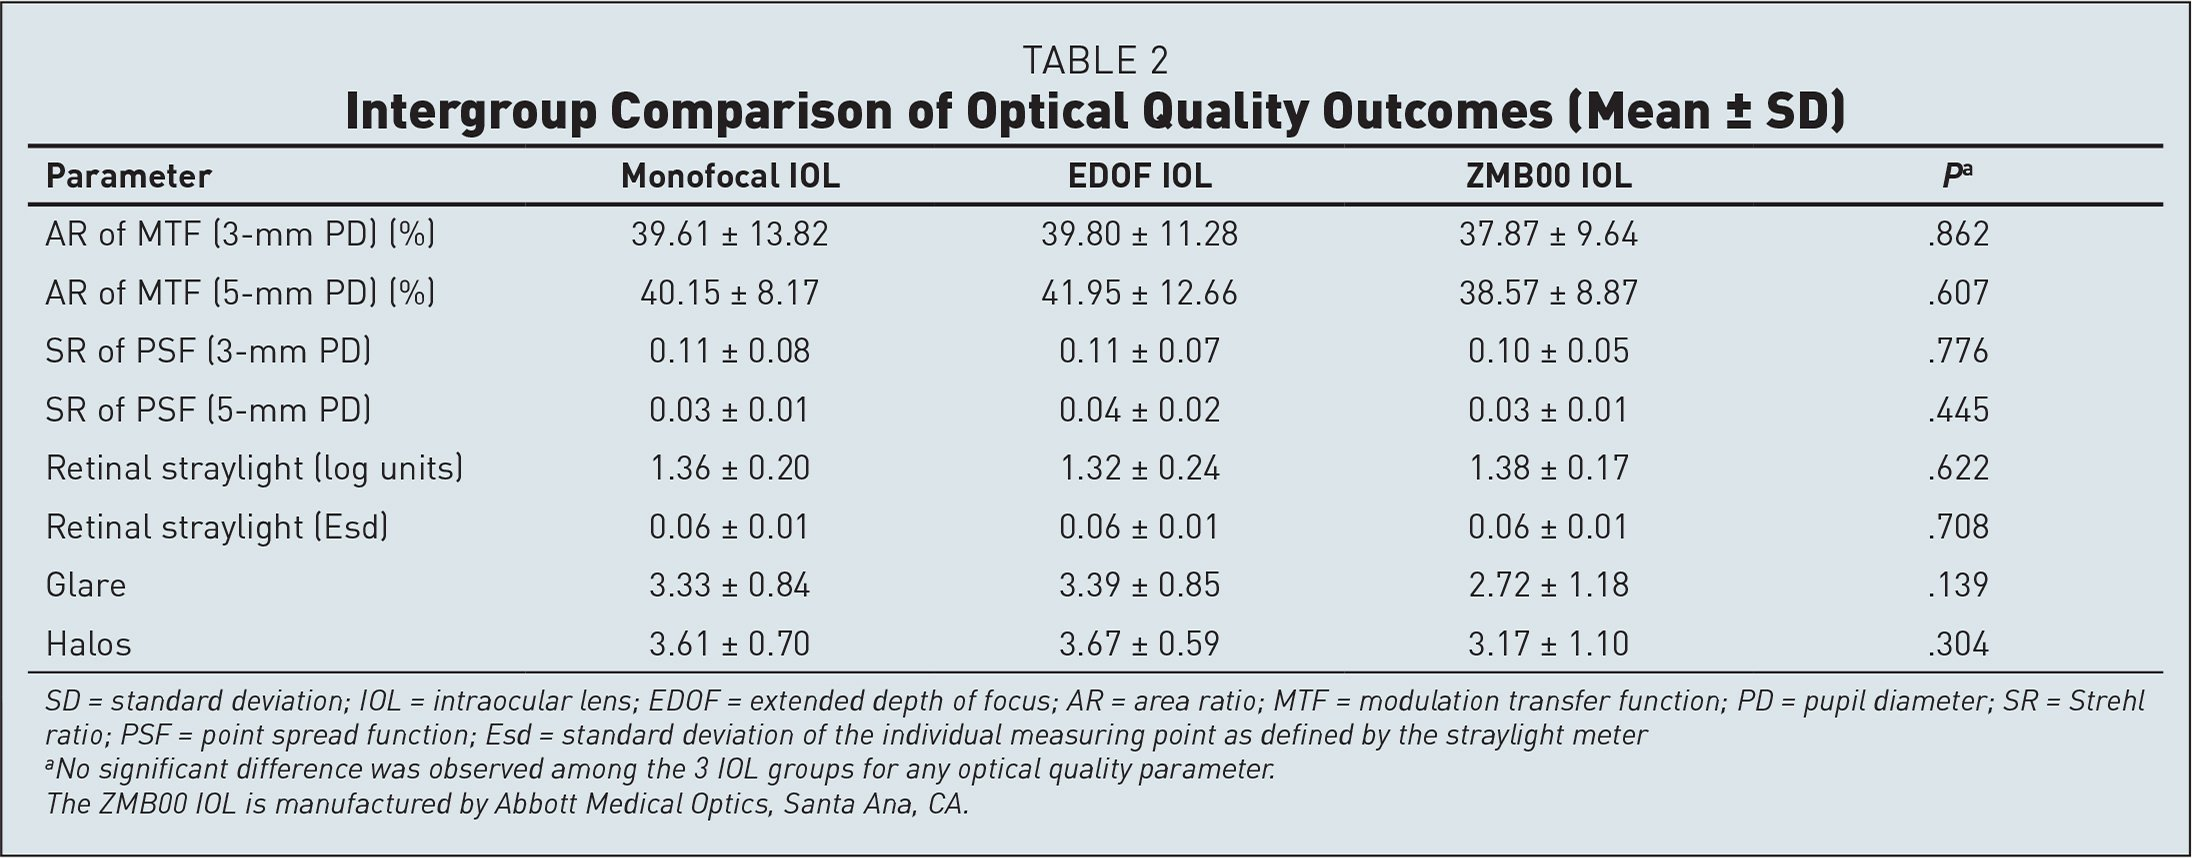 Intergroup Comparison of Optical Quality Outcomes (Mean ± SD)